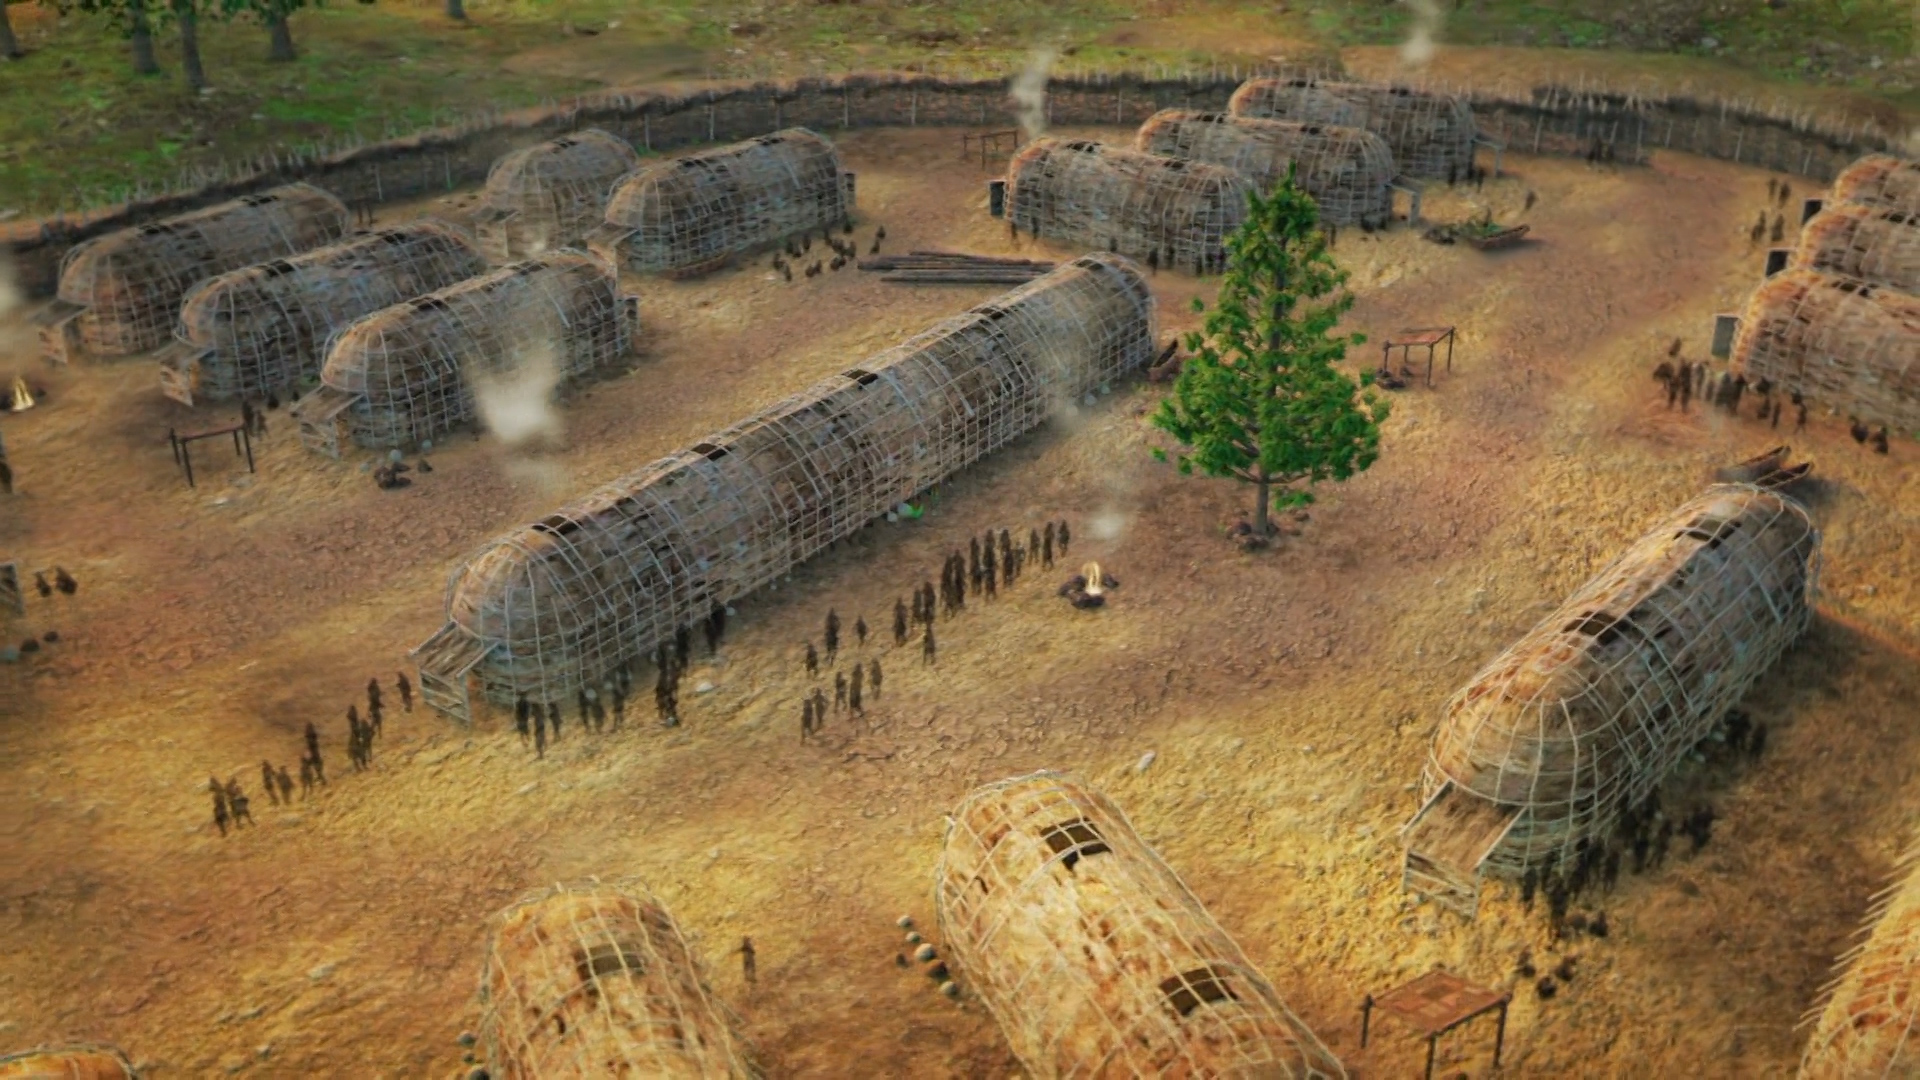 Graphic depiction longhouses in Haudenosaunee settlement. From Native America, Episode Two titled Nature to Nations.